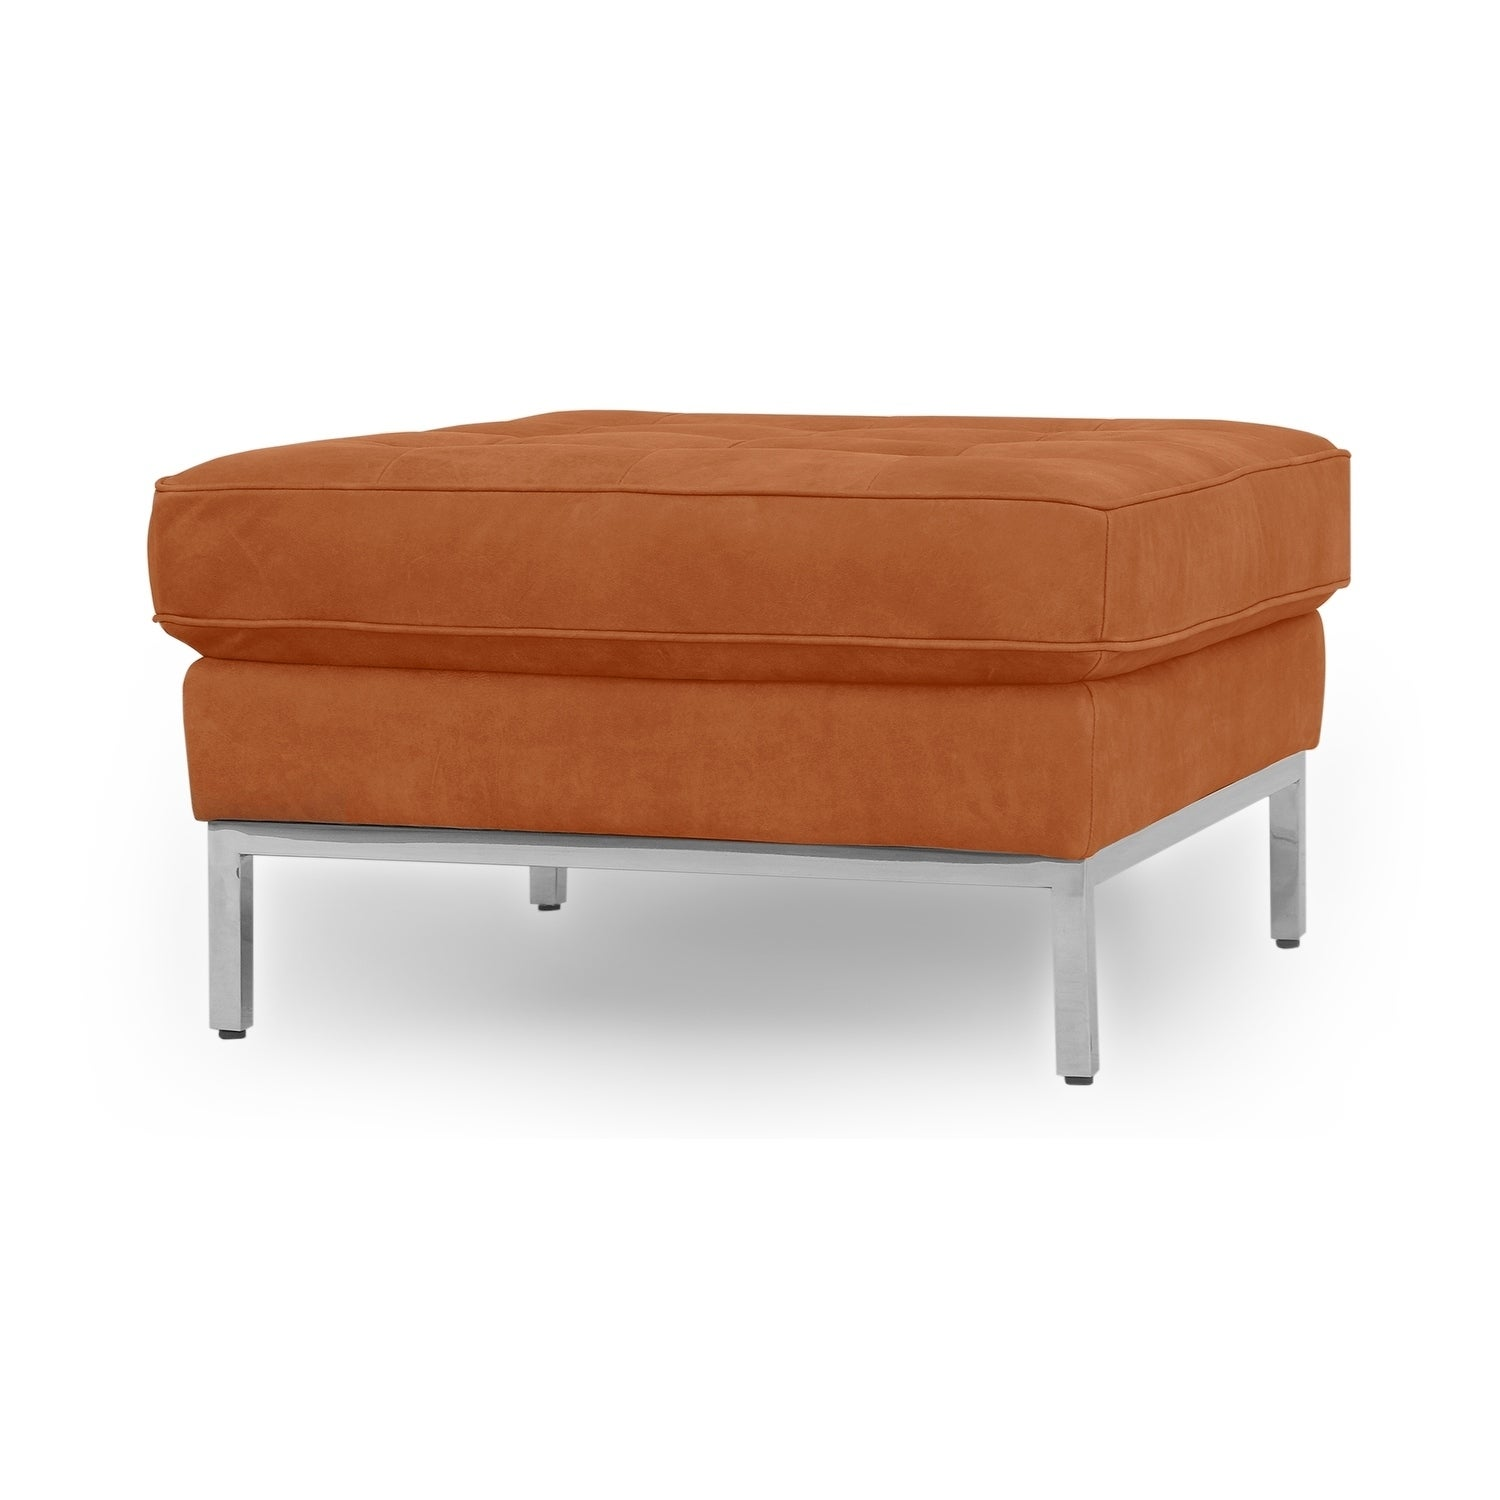 Picture of: Shop Florence Mid Century Modern Ottoman Full Grain Aniline Overstock 28377933 Width 28 X Depth 28 X Height 16 Leather Night